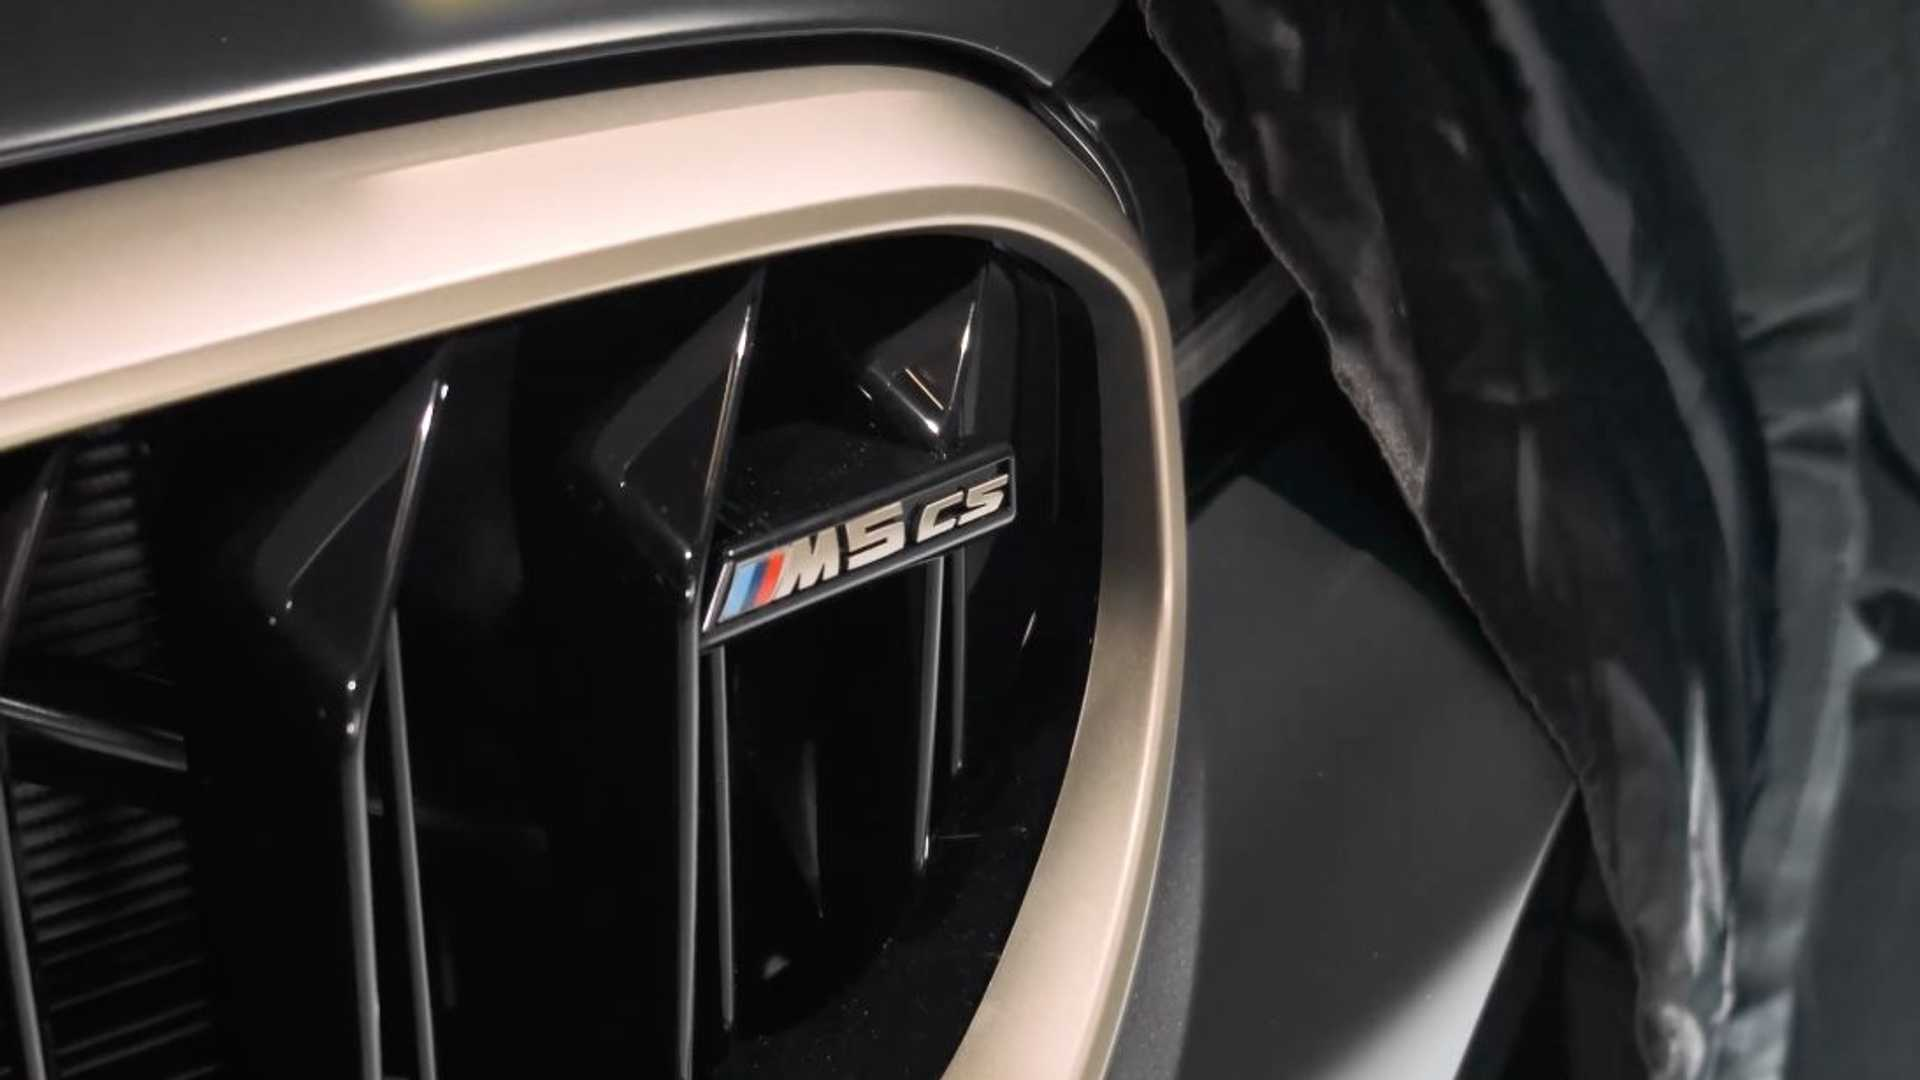 BMW Starts Talking About M5 CS, Possible Reveal in 2021 January